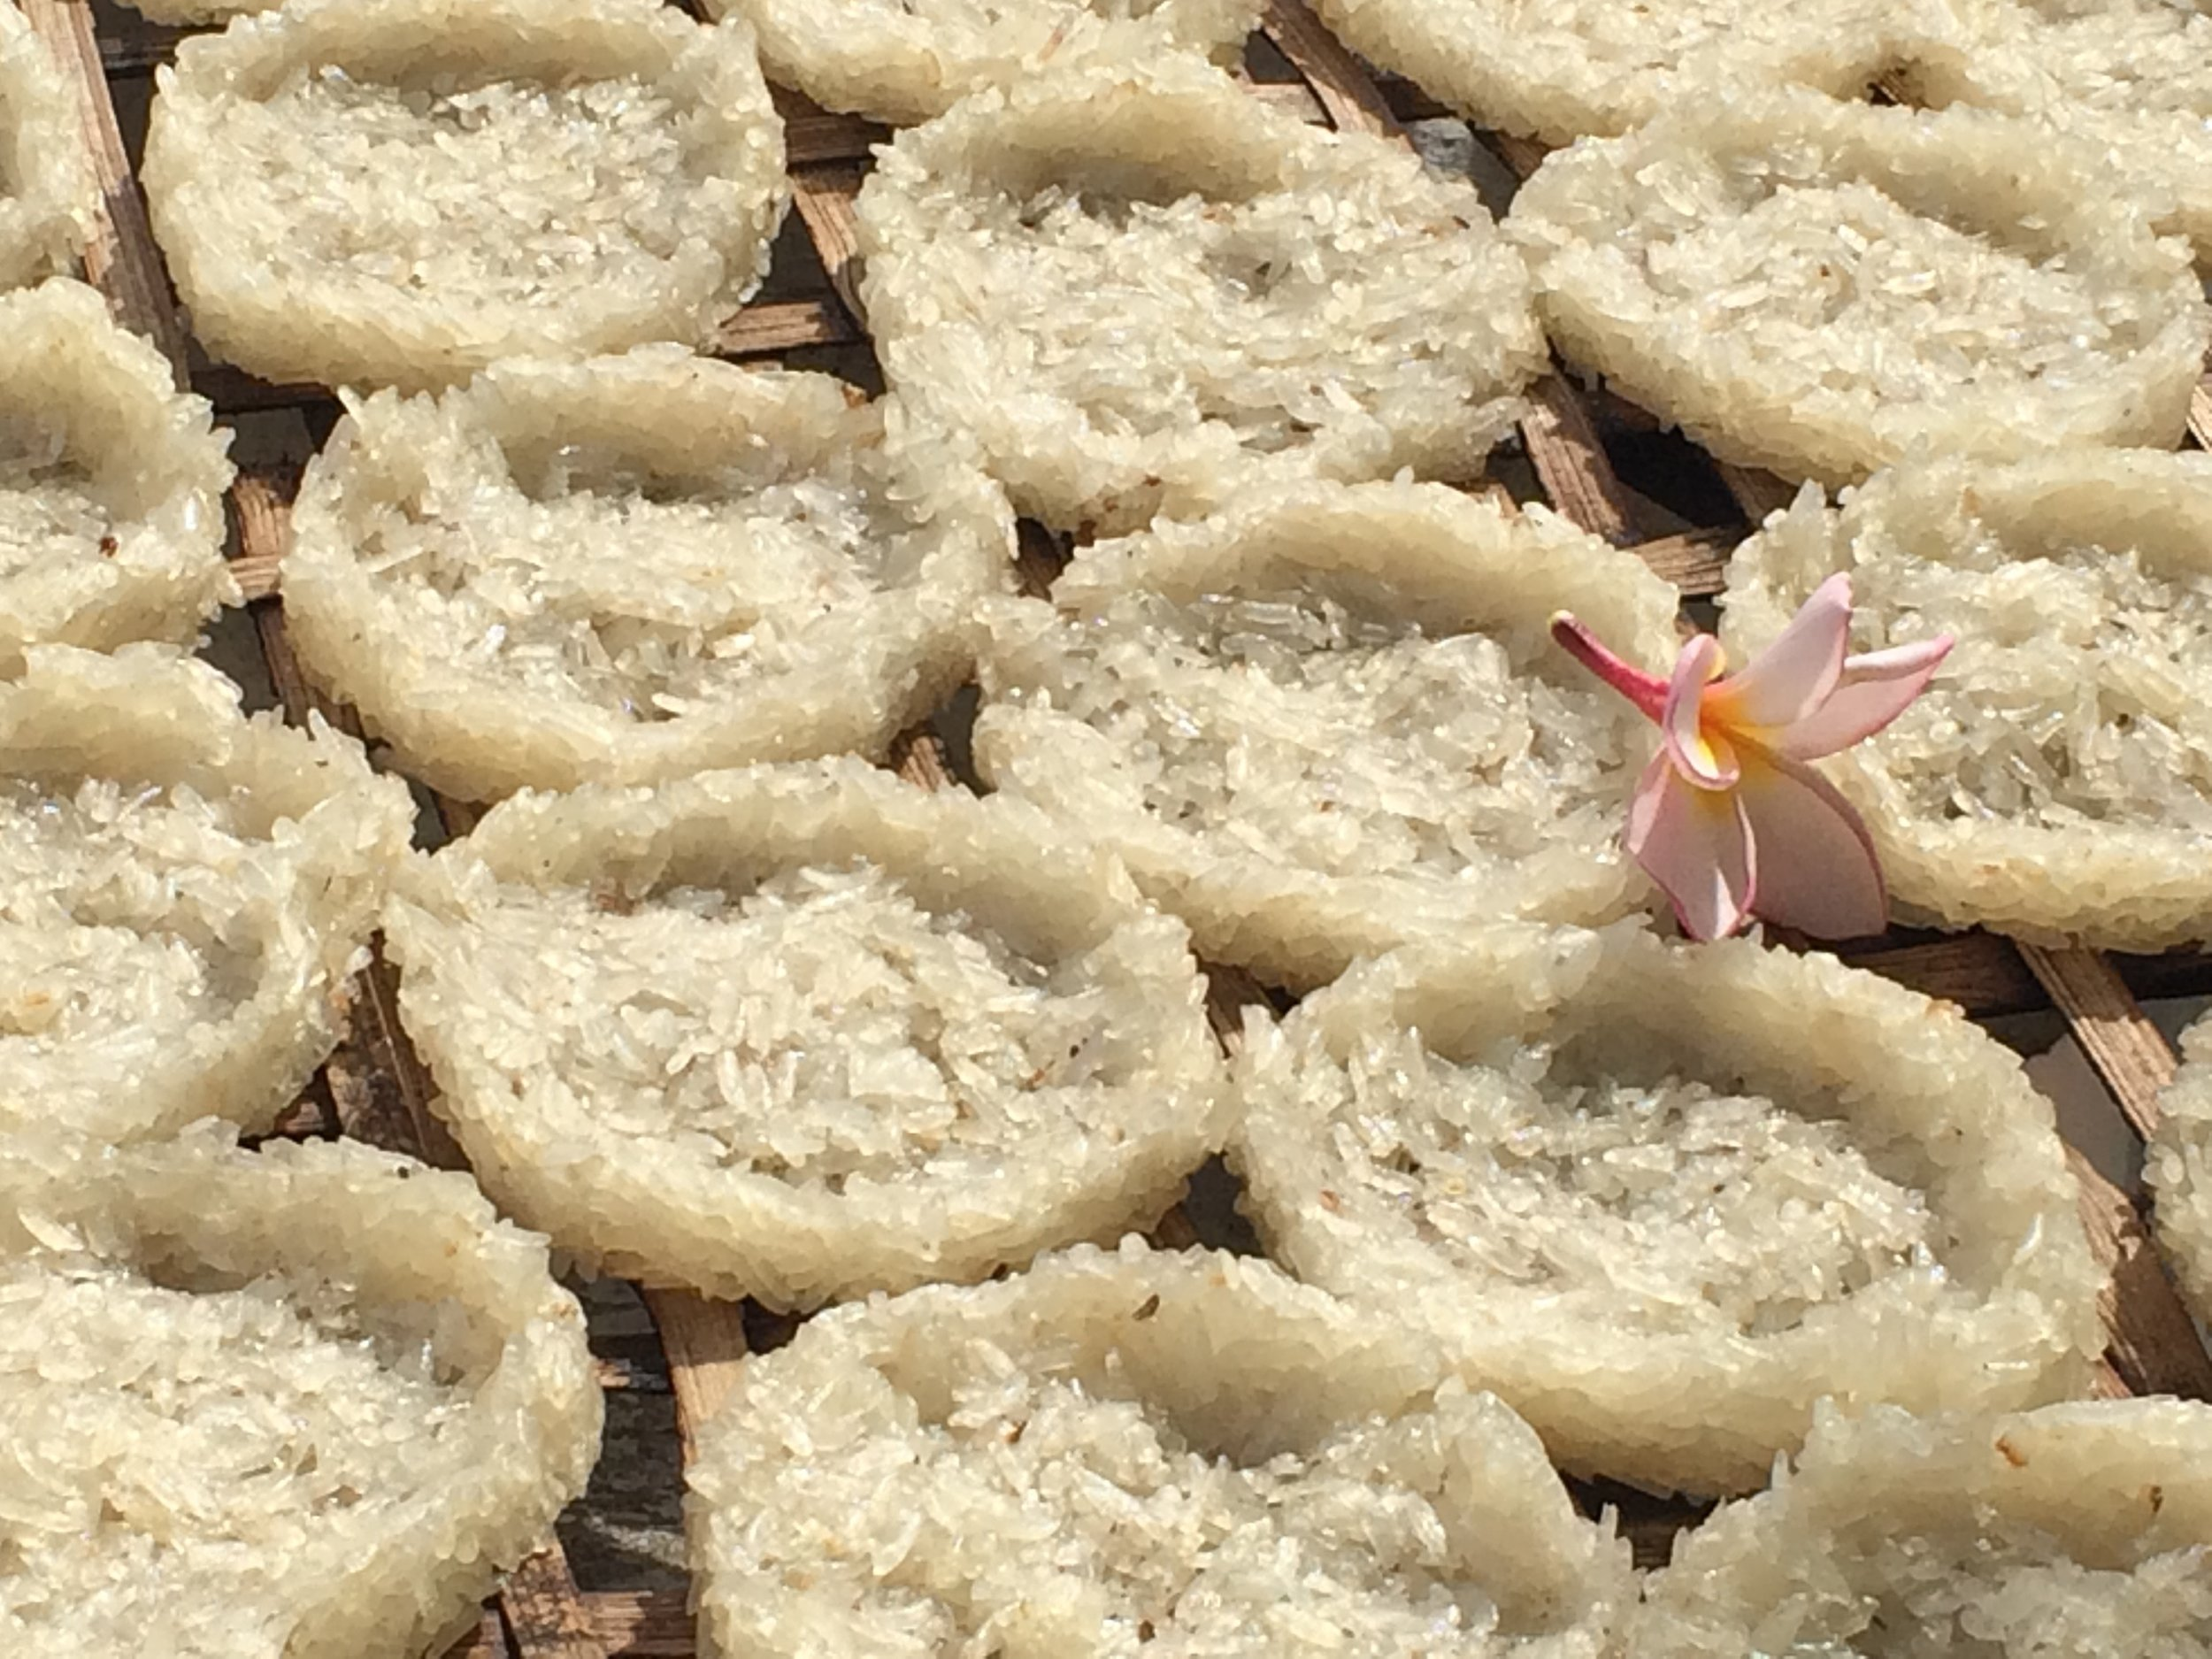 I never did figure out what these Lao rice cakes were for